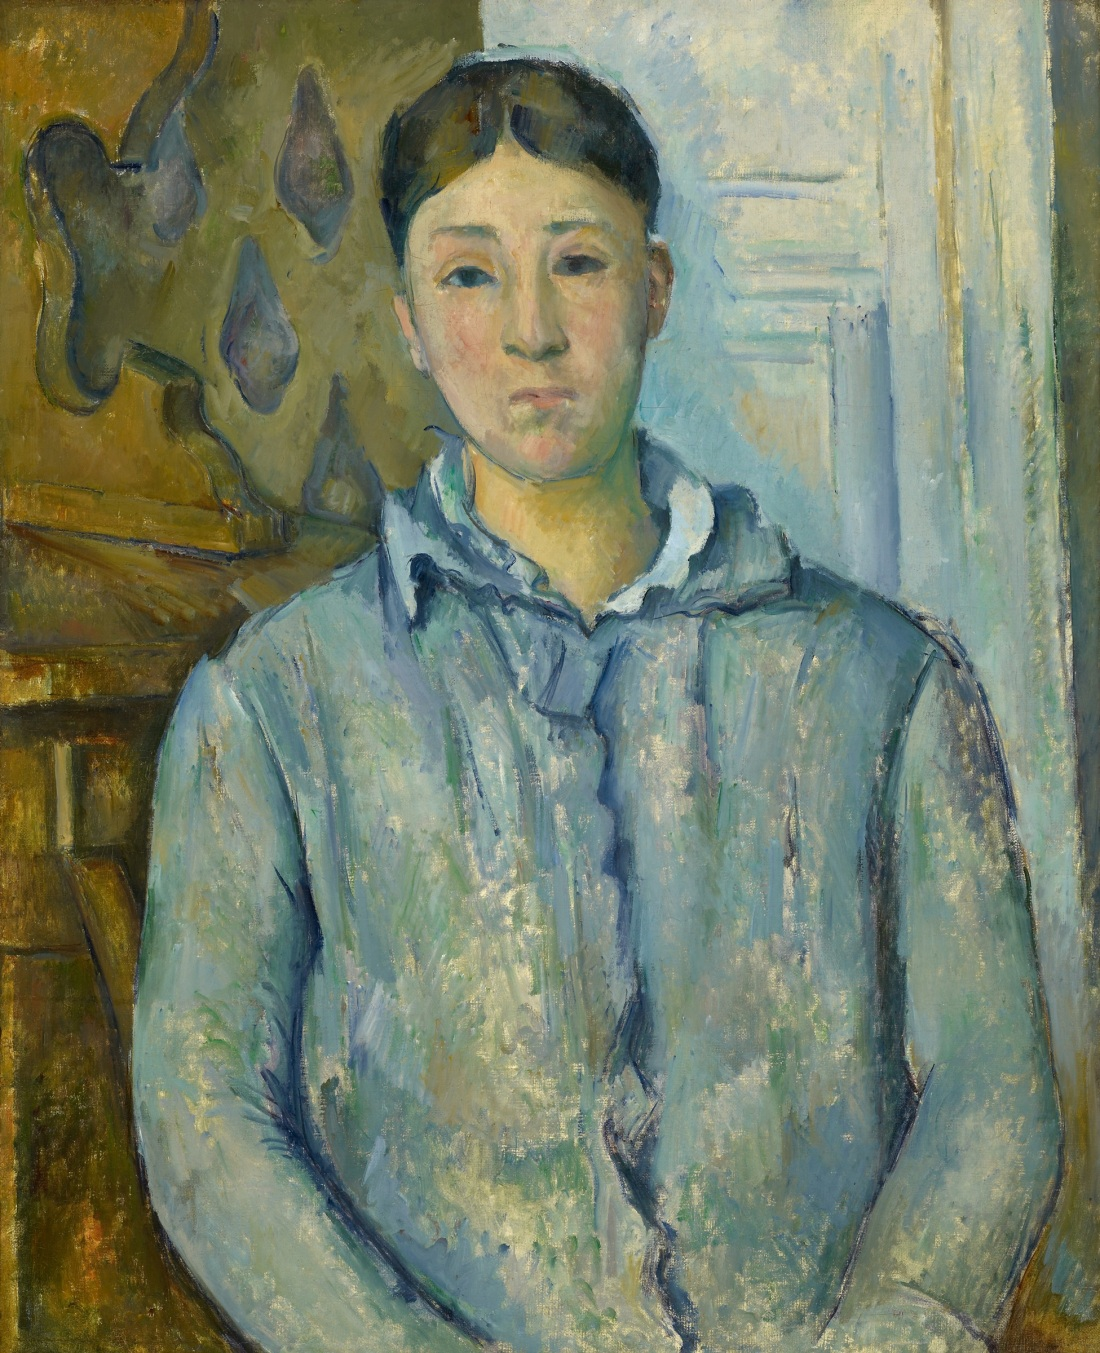 Paul Cezanne, Madame Cezanne in a Blue Dress, ca. 1888-90. Collection of the Museum of Fine Arts Houston.